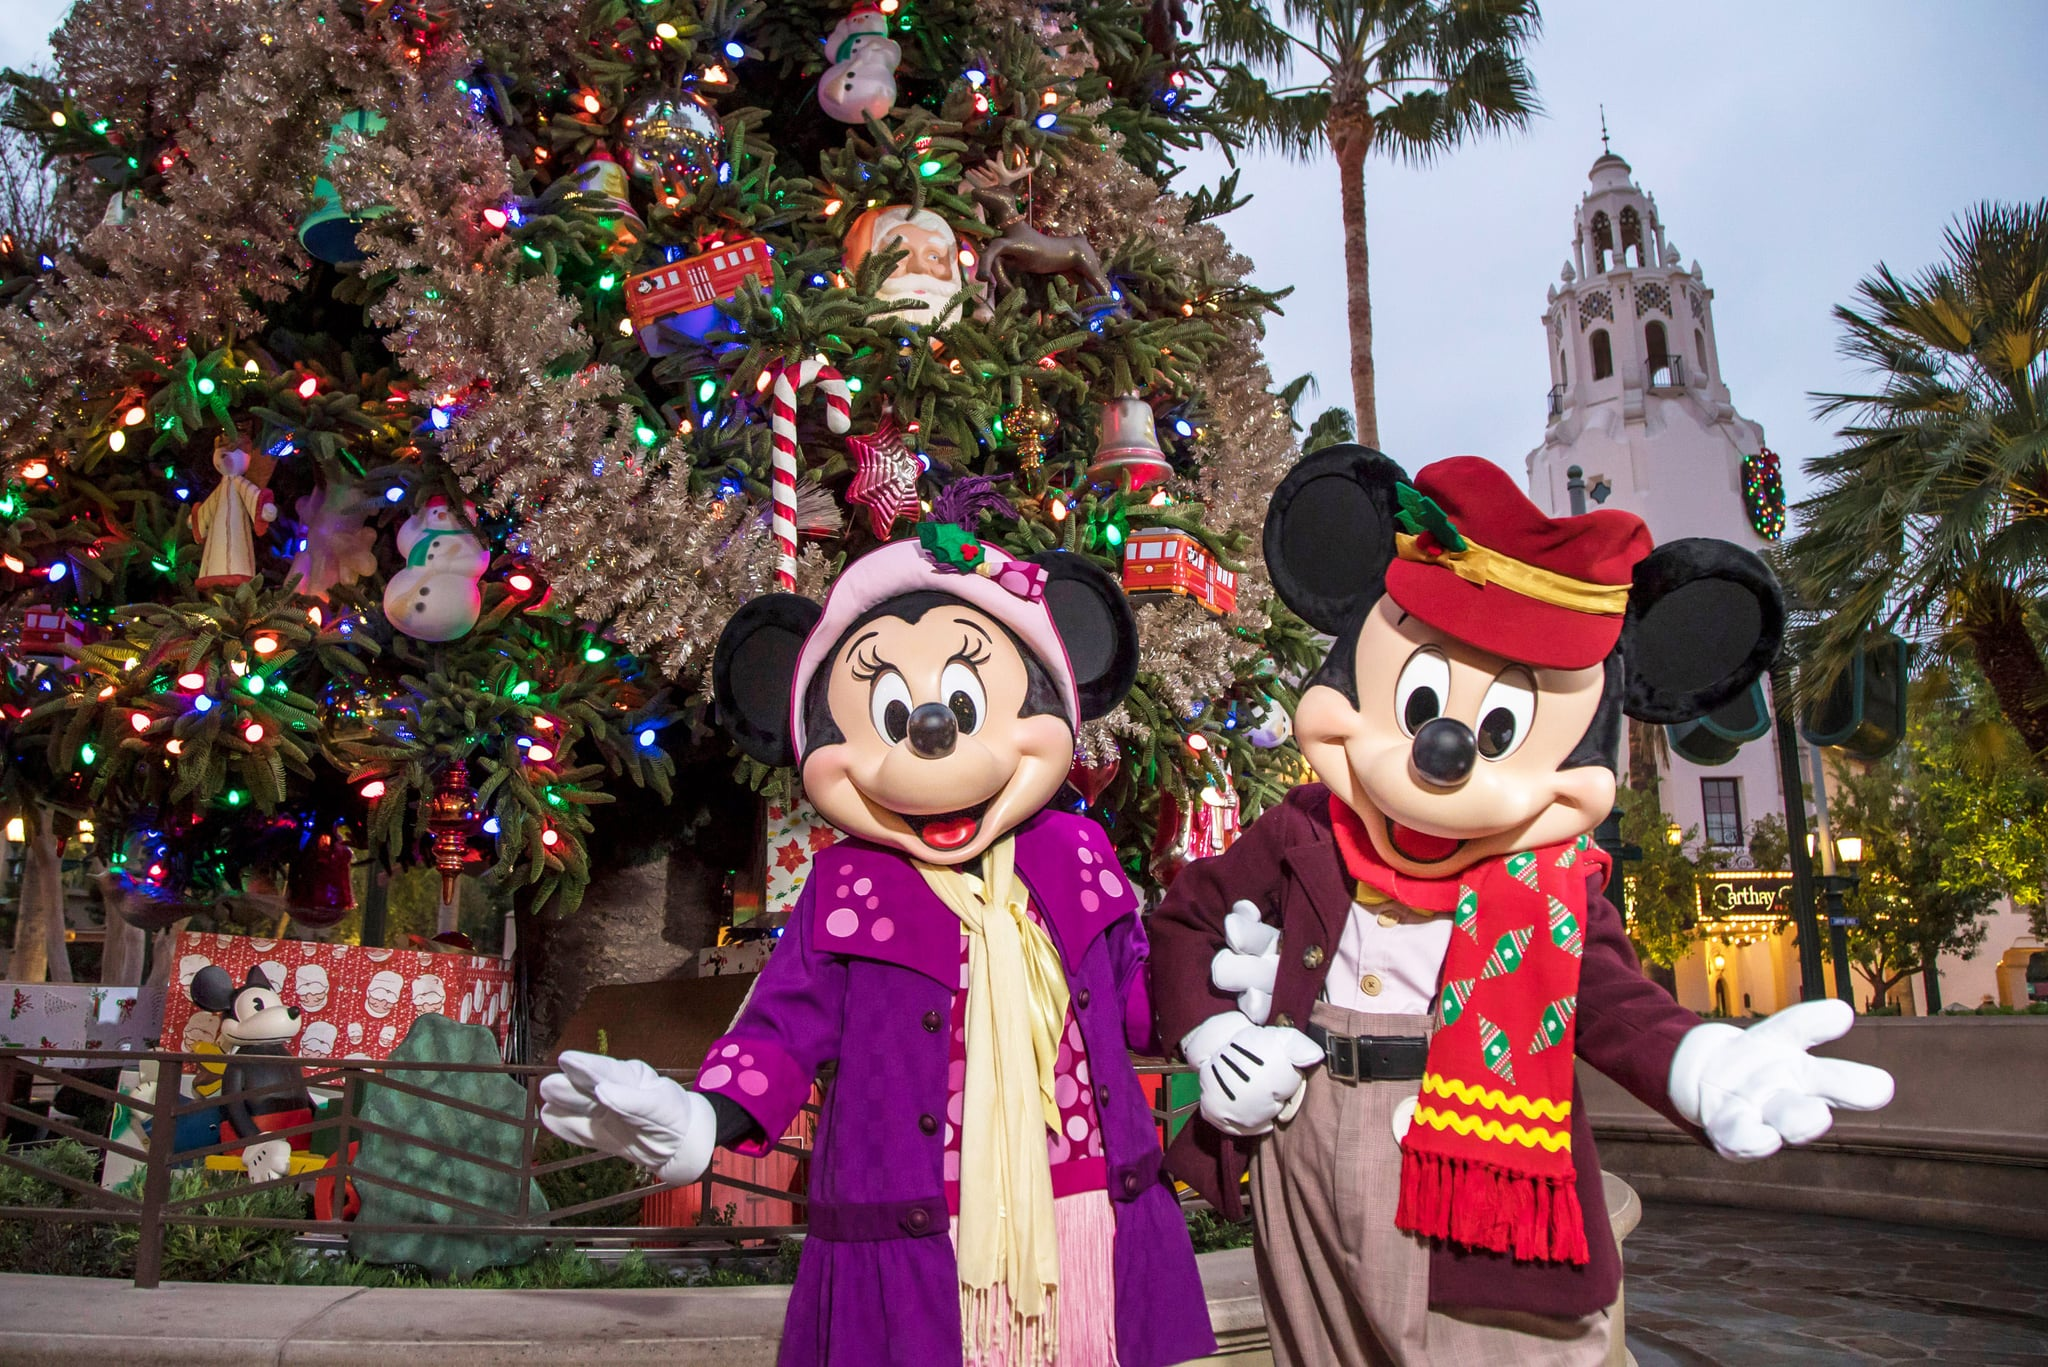 The Disneyland Resort transforms into the Merriest Place on Earth for the holiday season, Nov. 8, 2019, through Jan. 6, 2020. Guests plan their seasonal visits to Disneyland Resort year after year to experience beloved Holiday traditions and festive cheer, from snowfall on Main Street, U.S.A., to glistening décor, Disney-themed treats and merchandise, holiday entertainment and one-of-a-kind transformations that create